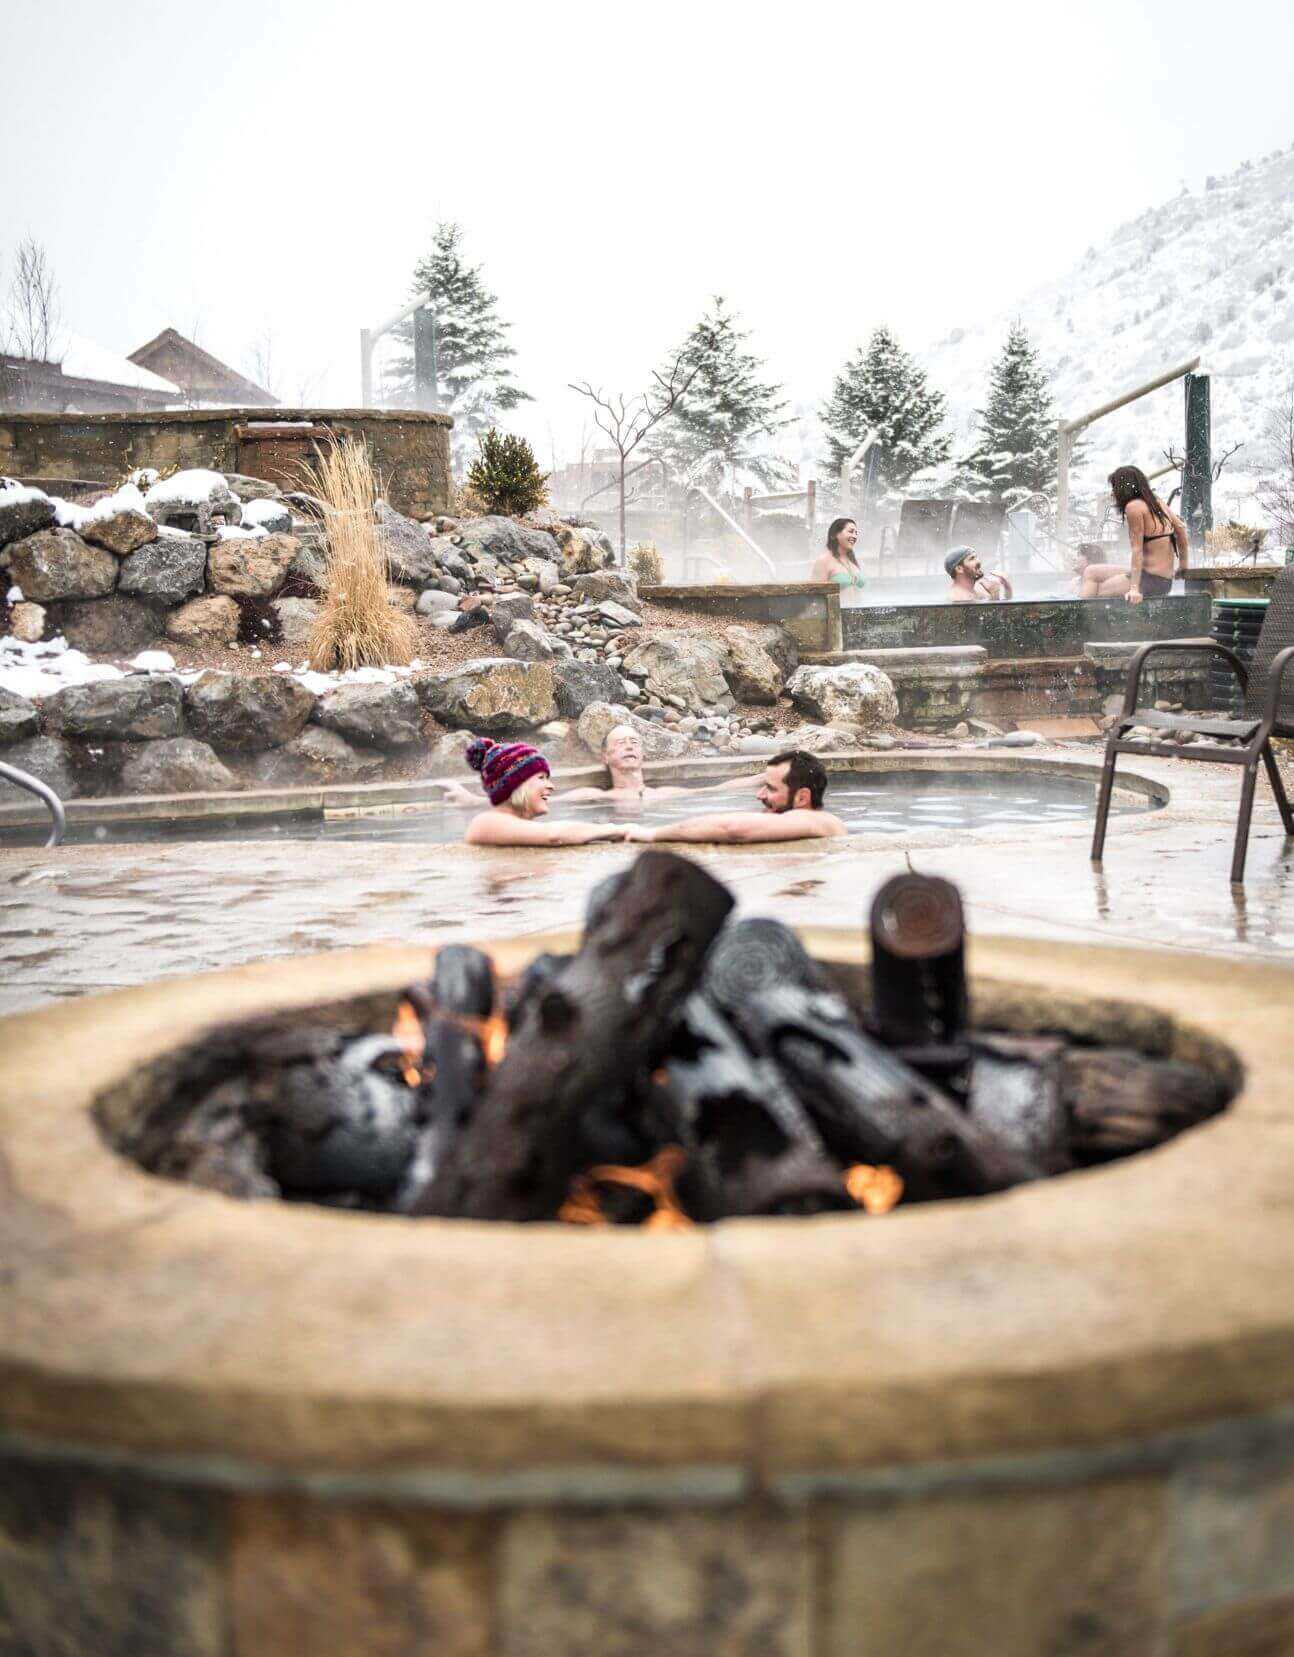 Soaking on a winter day at Iron Mountain Hot Springs